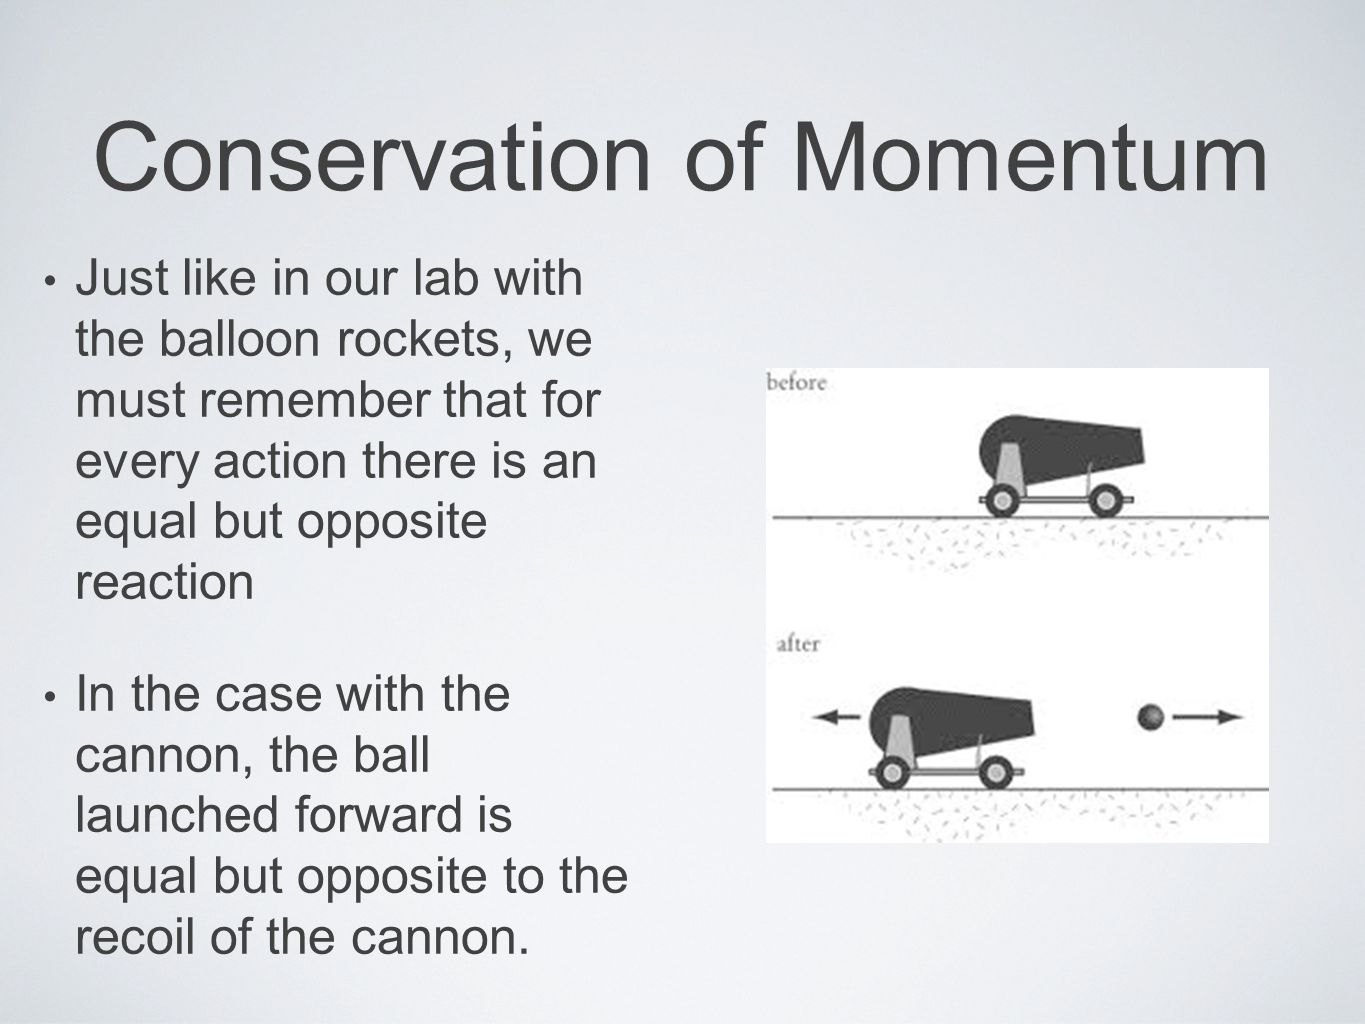 Conservation of Momentum In this scenario we have 0 momentum in the before image.